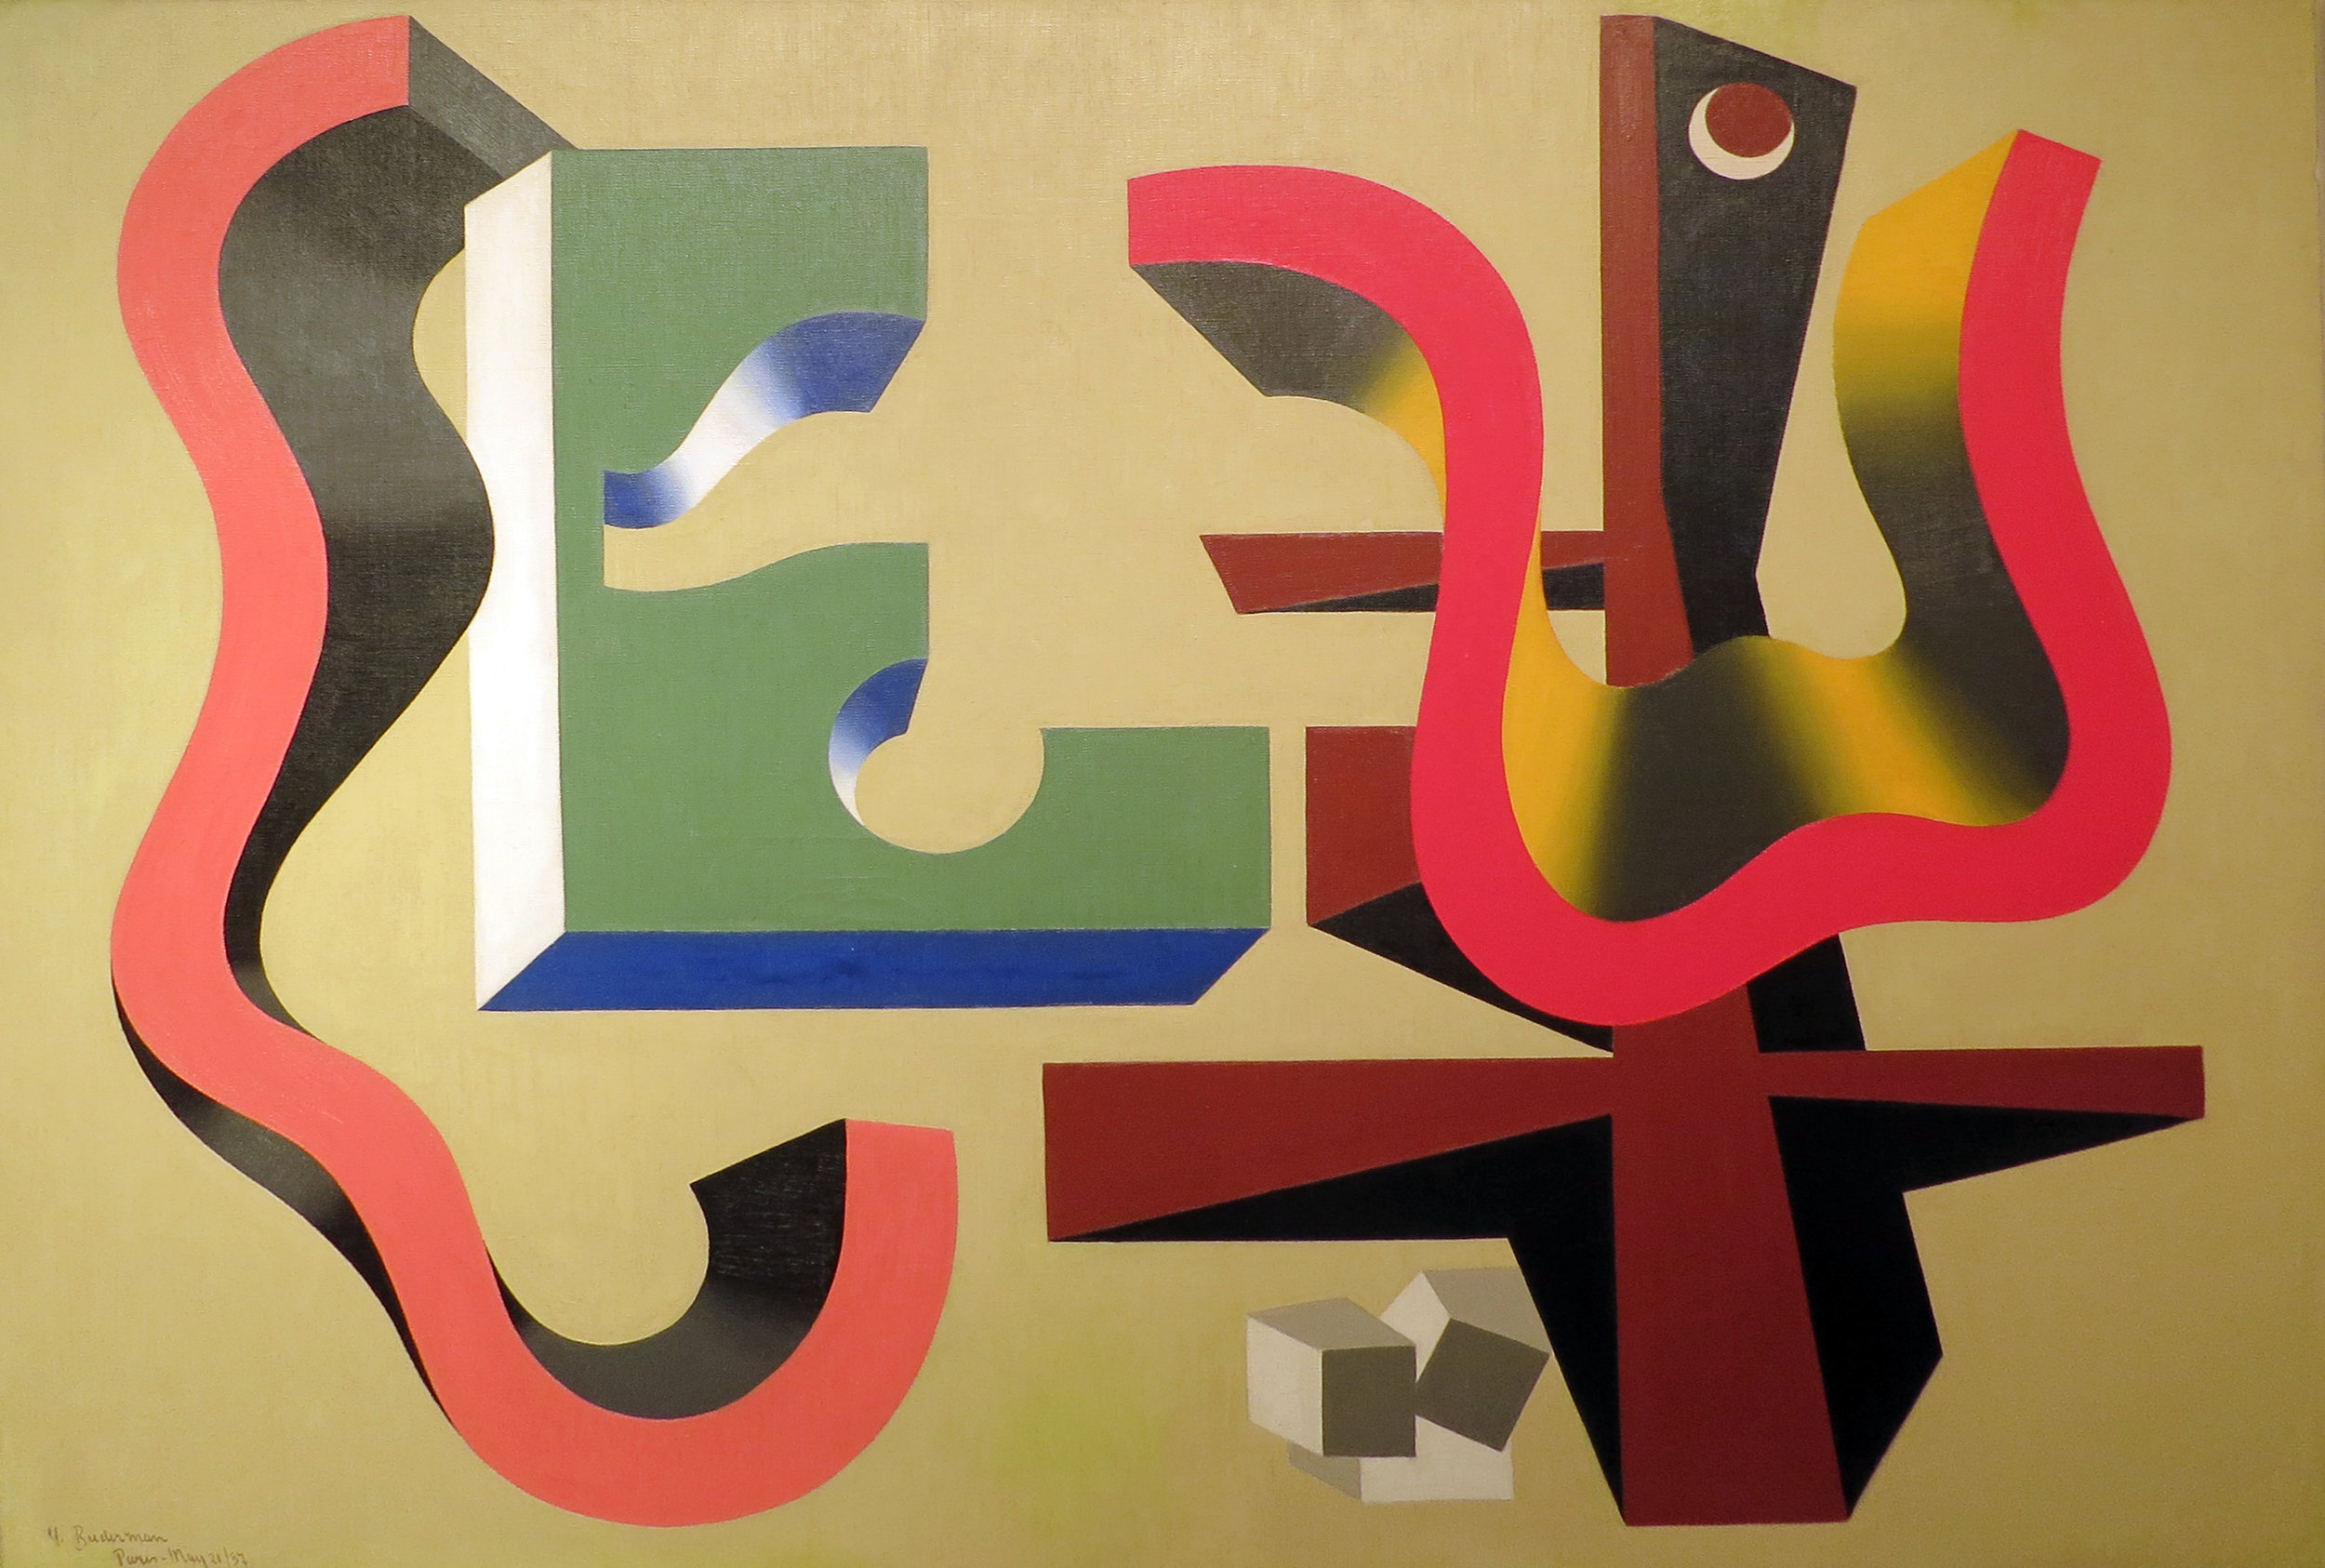 Abstract painting of floating shapes (red, green, black, and blue)